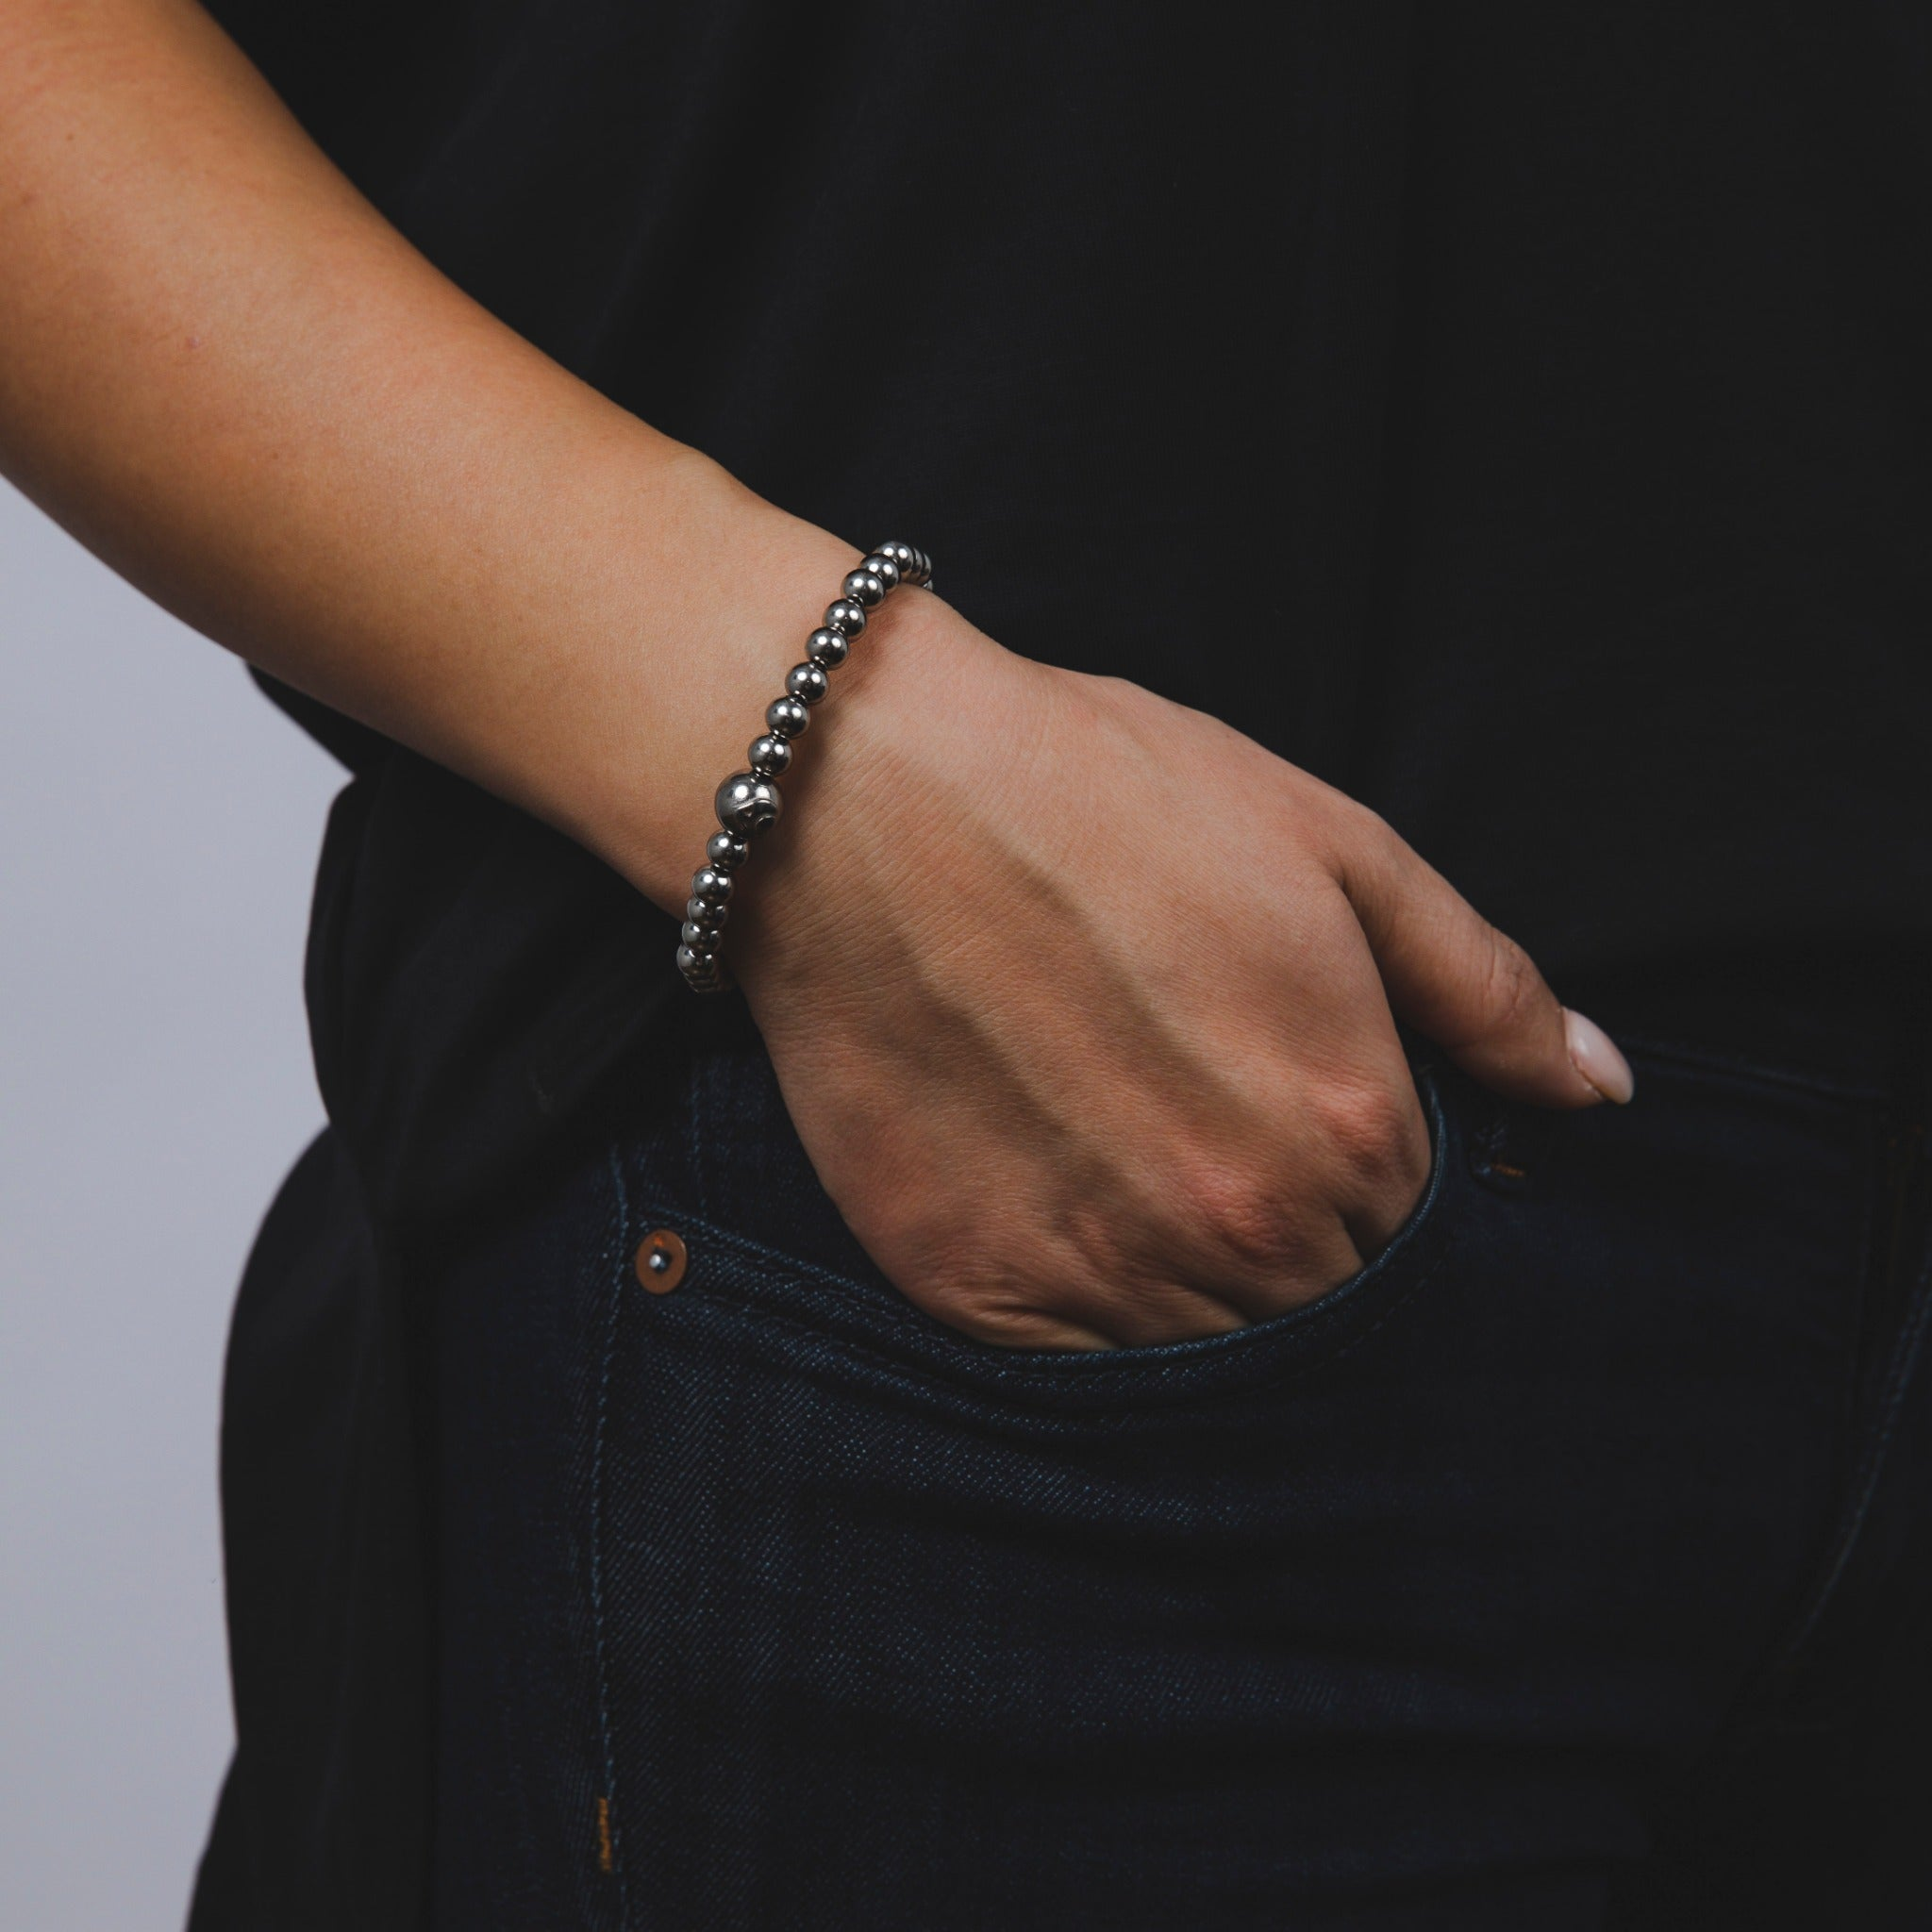 Woman wearing silver metal bead bracelet on wrist.